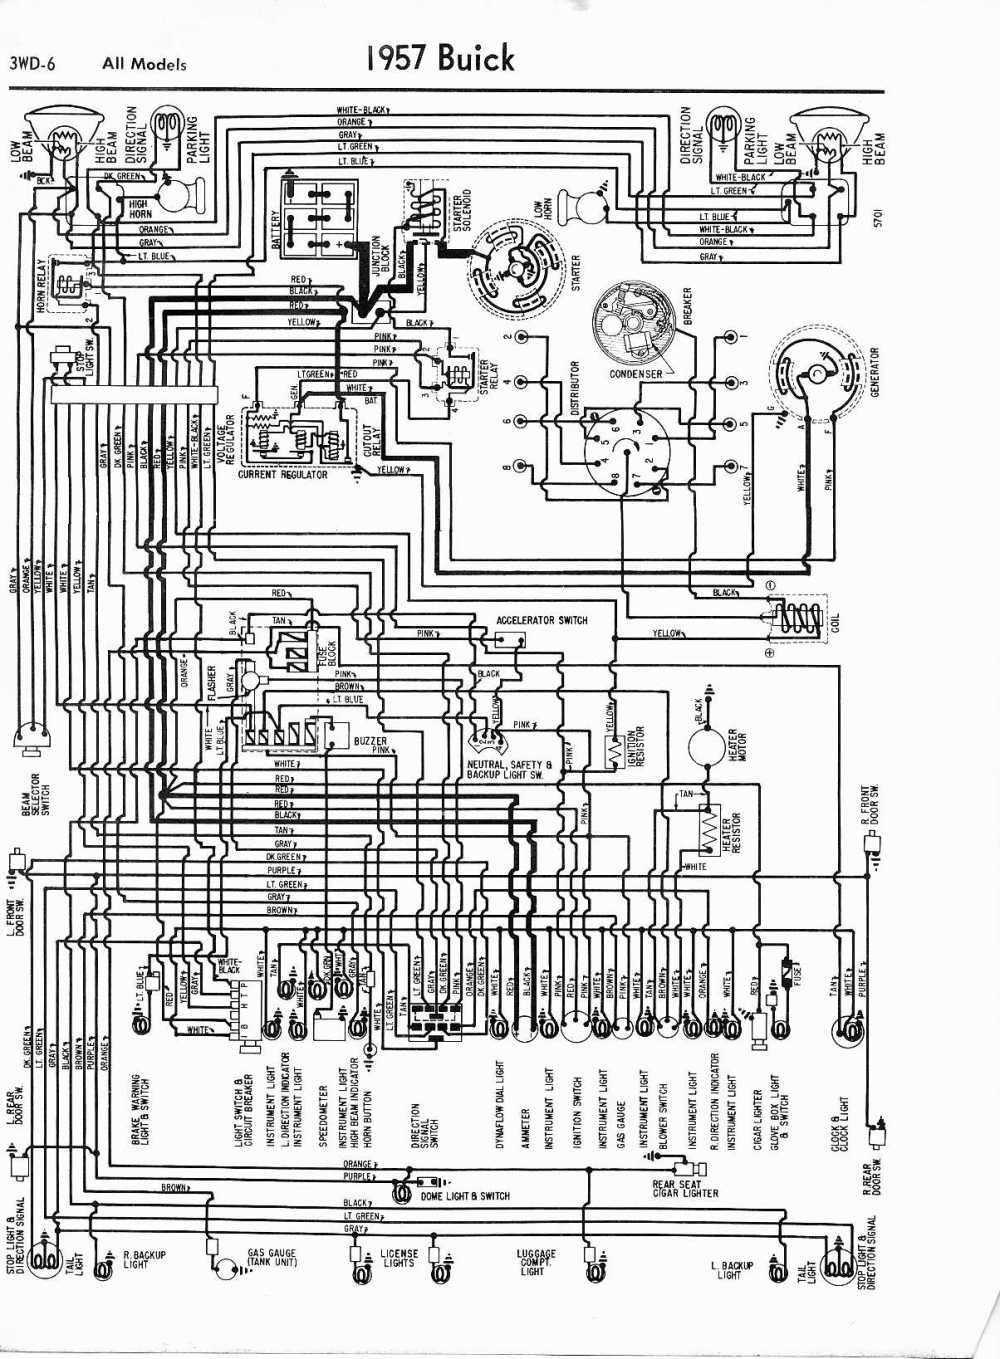 medium resolution of wildcat wiring diagram wiring diagrams arctic cat 500 wiring diagram buick wiring diagrams 1957 1965 r